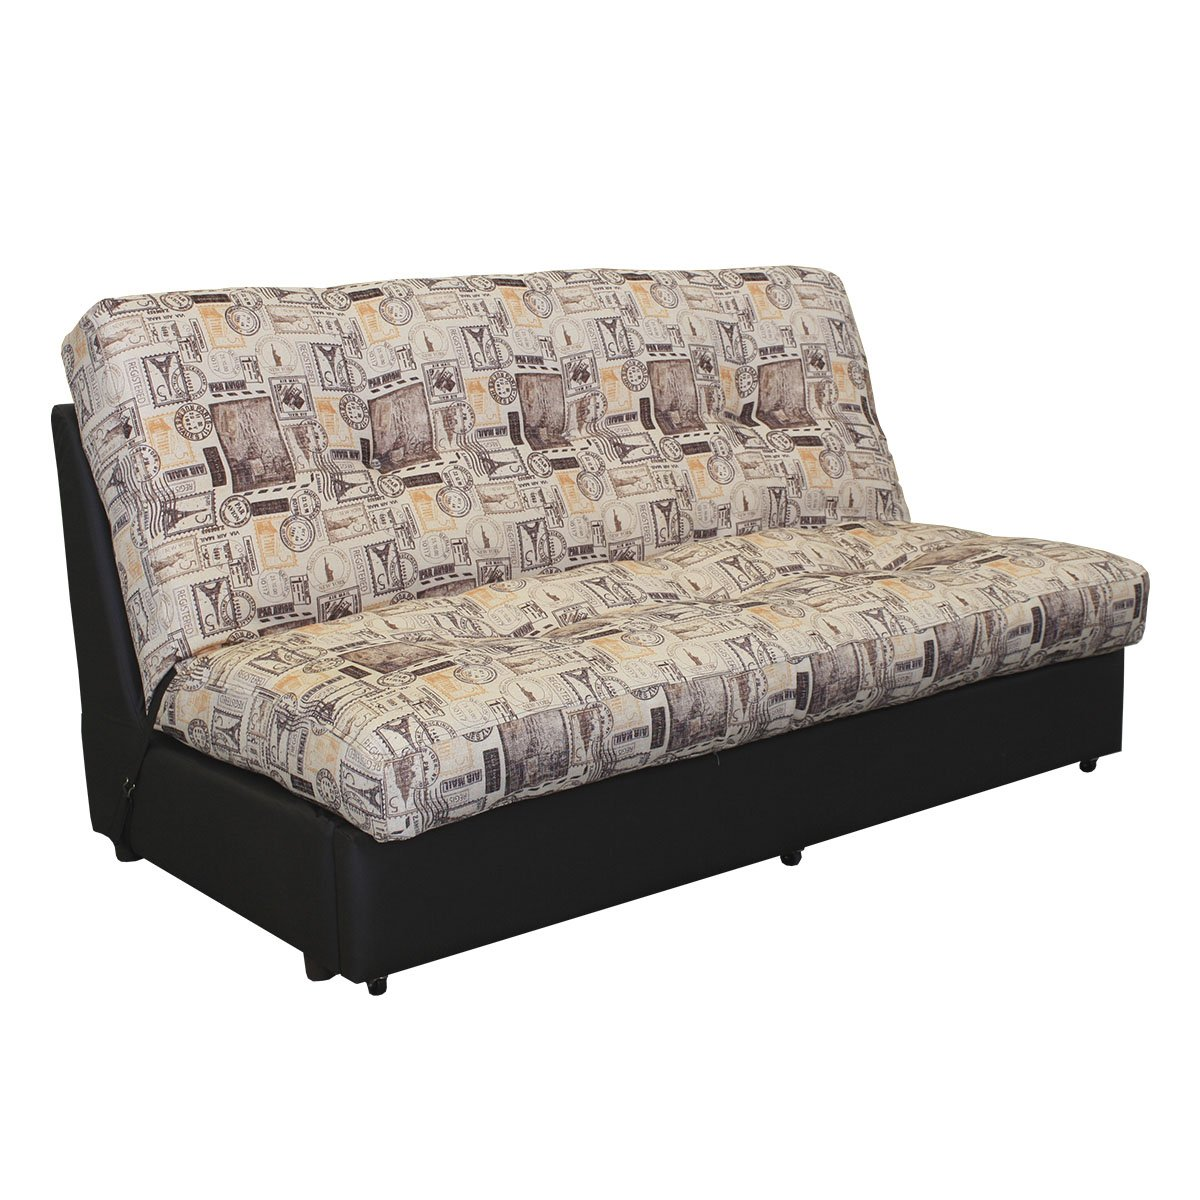 Sofa cama sofas camas sofa brownsvilleclaimhelp thesofa for Precio sofa cama matrimonial